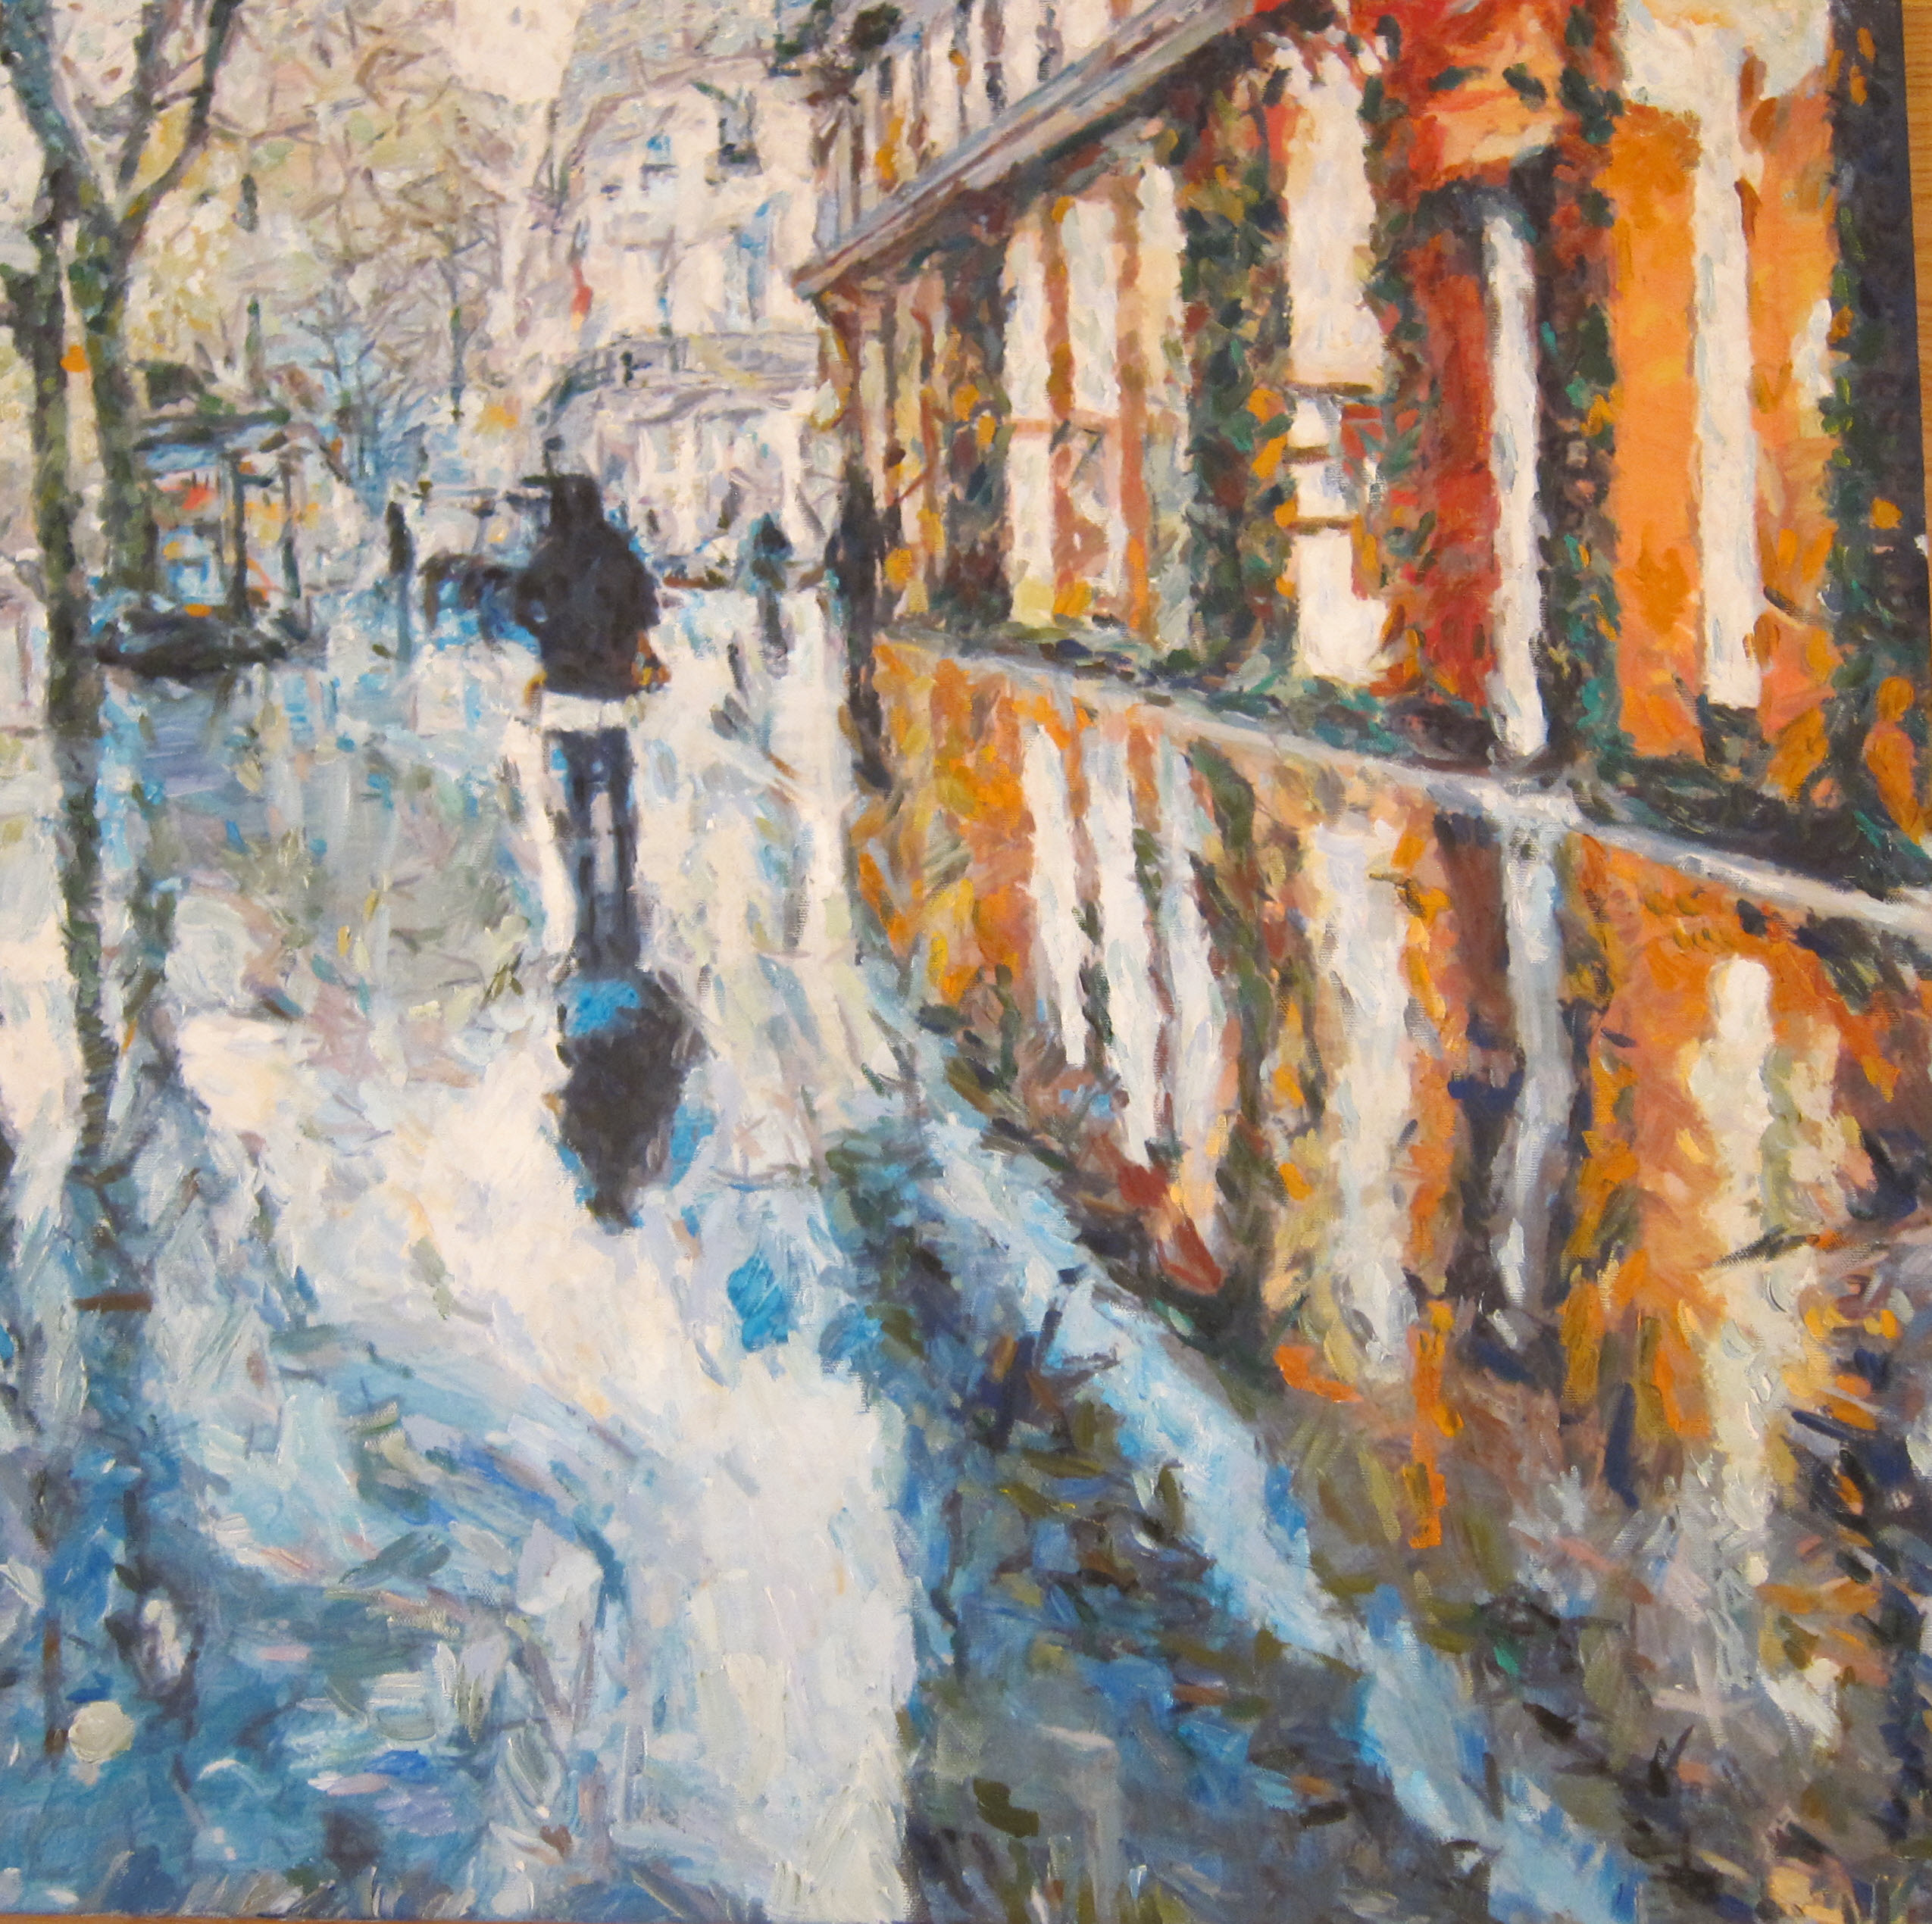 Rain. Reflection. A. Lefbard, 2015, 85x85 сm, oil on canvas